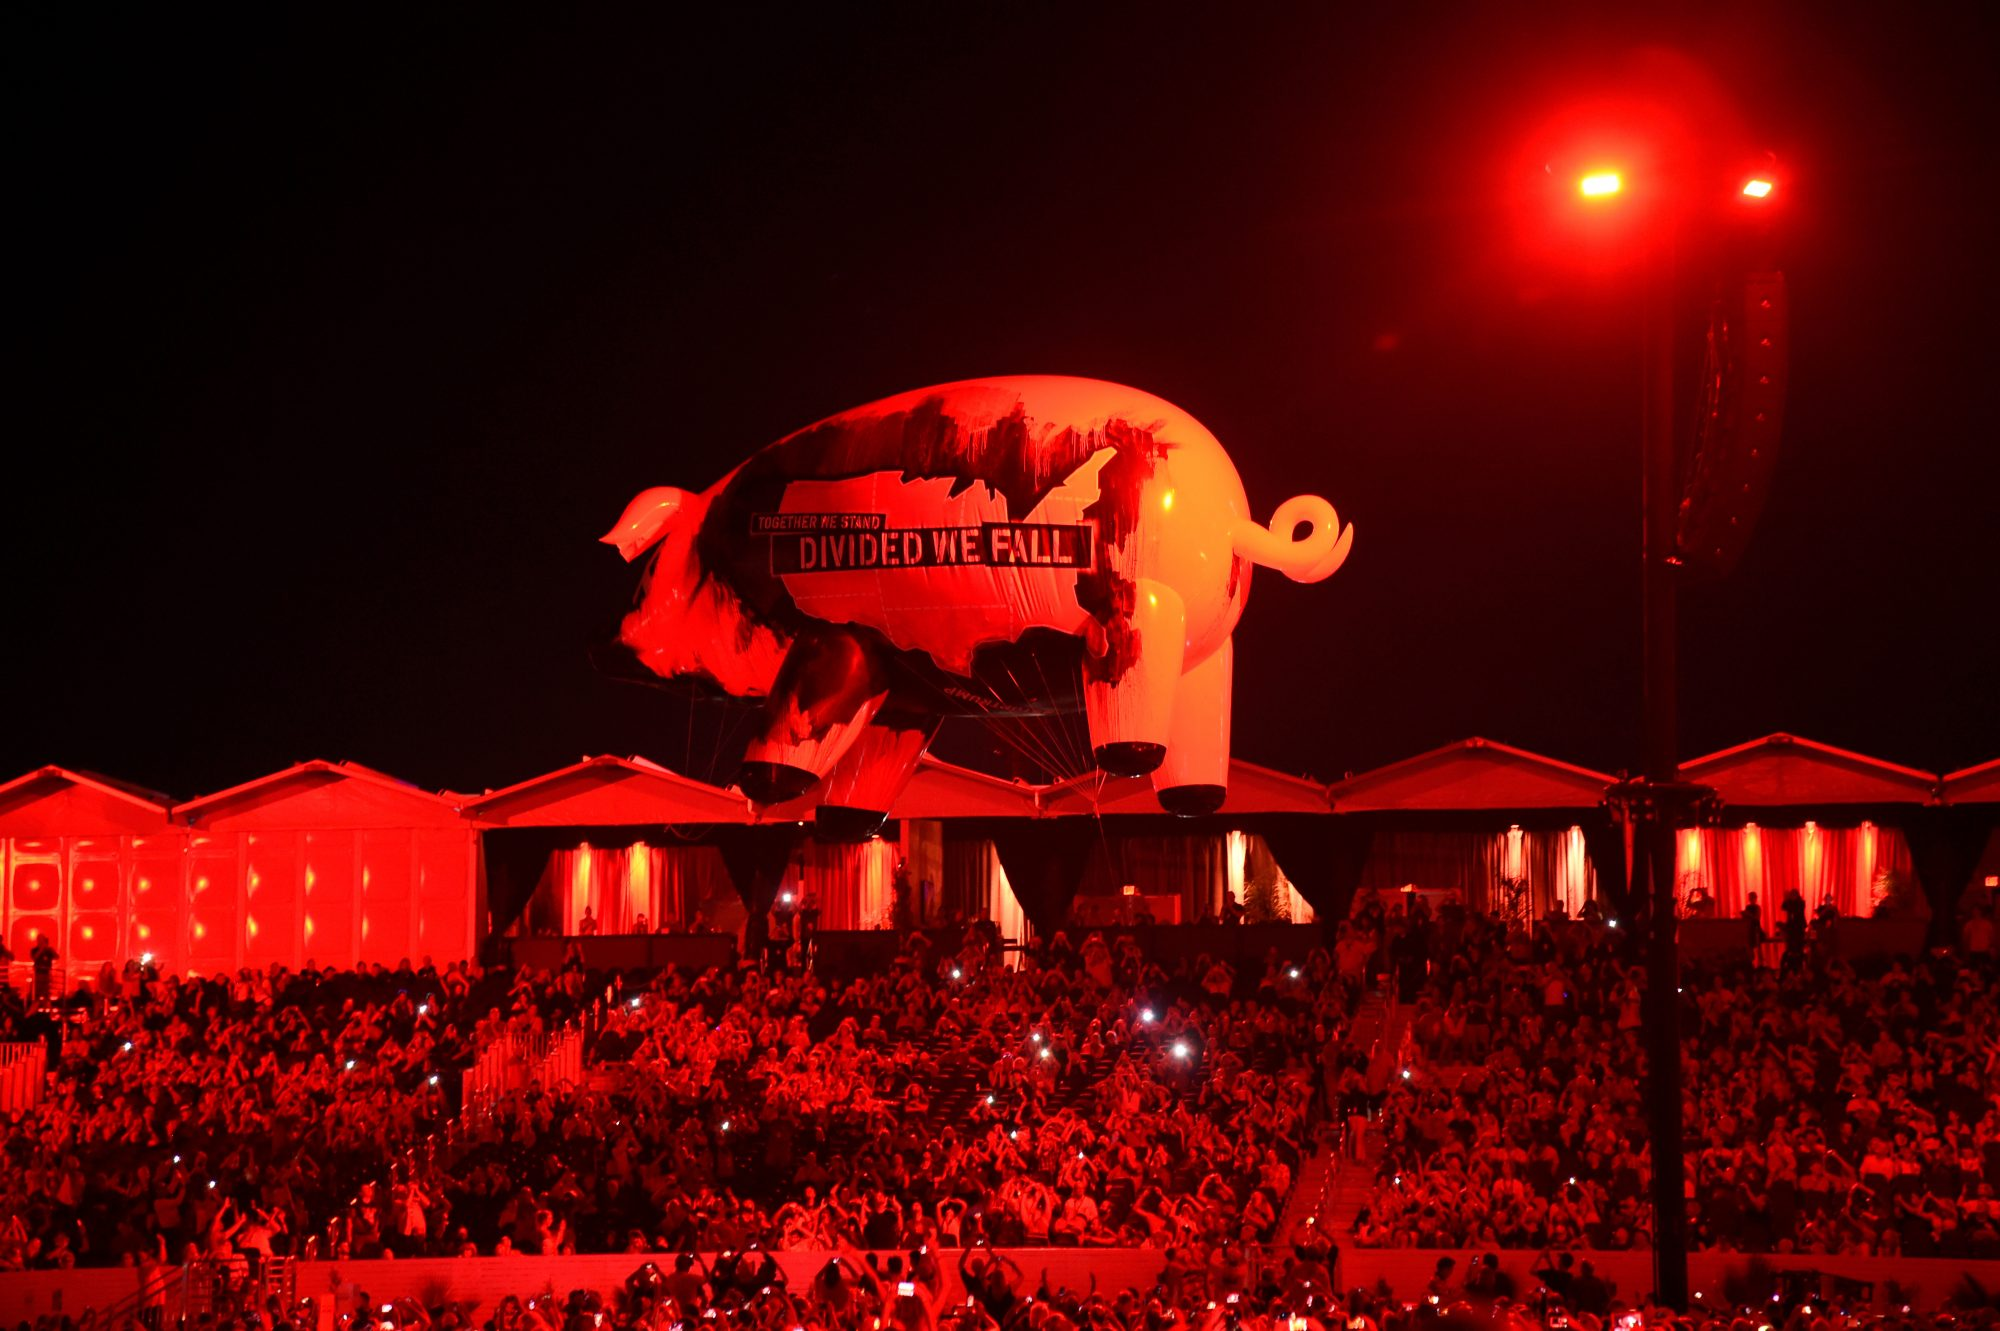 "INDIO, CA - OCTOBER 09: ""Divided We Fall"" Pig floats over the audience during the Roger Waters performance at Desert Trip at The Empire Polo Club on October 9, 2016 in Indio, California. (Photo by Kevin Mazur/Getty Images for Desert Trip)"